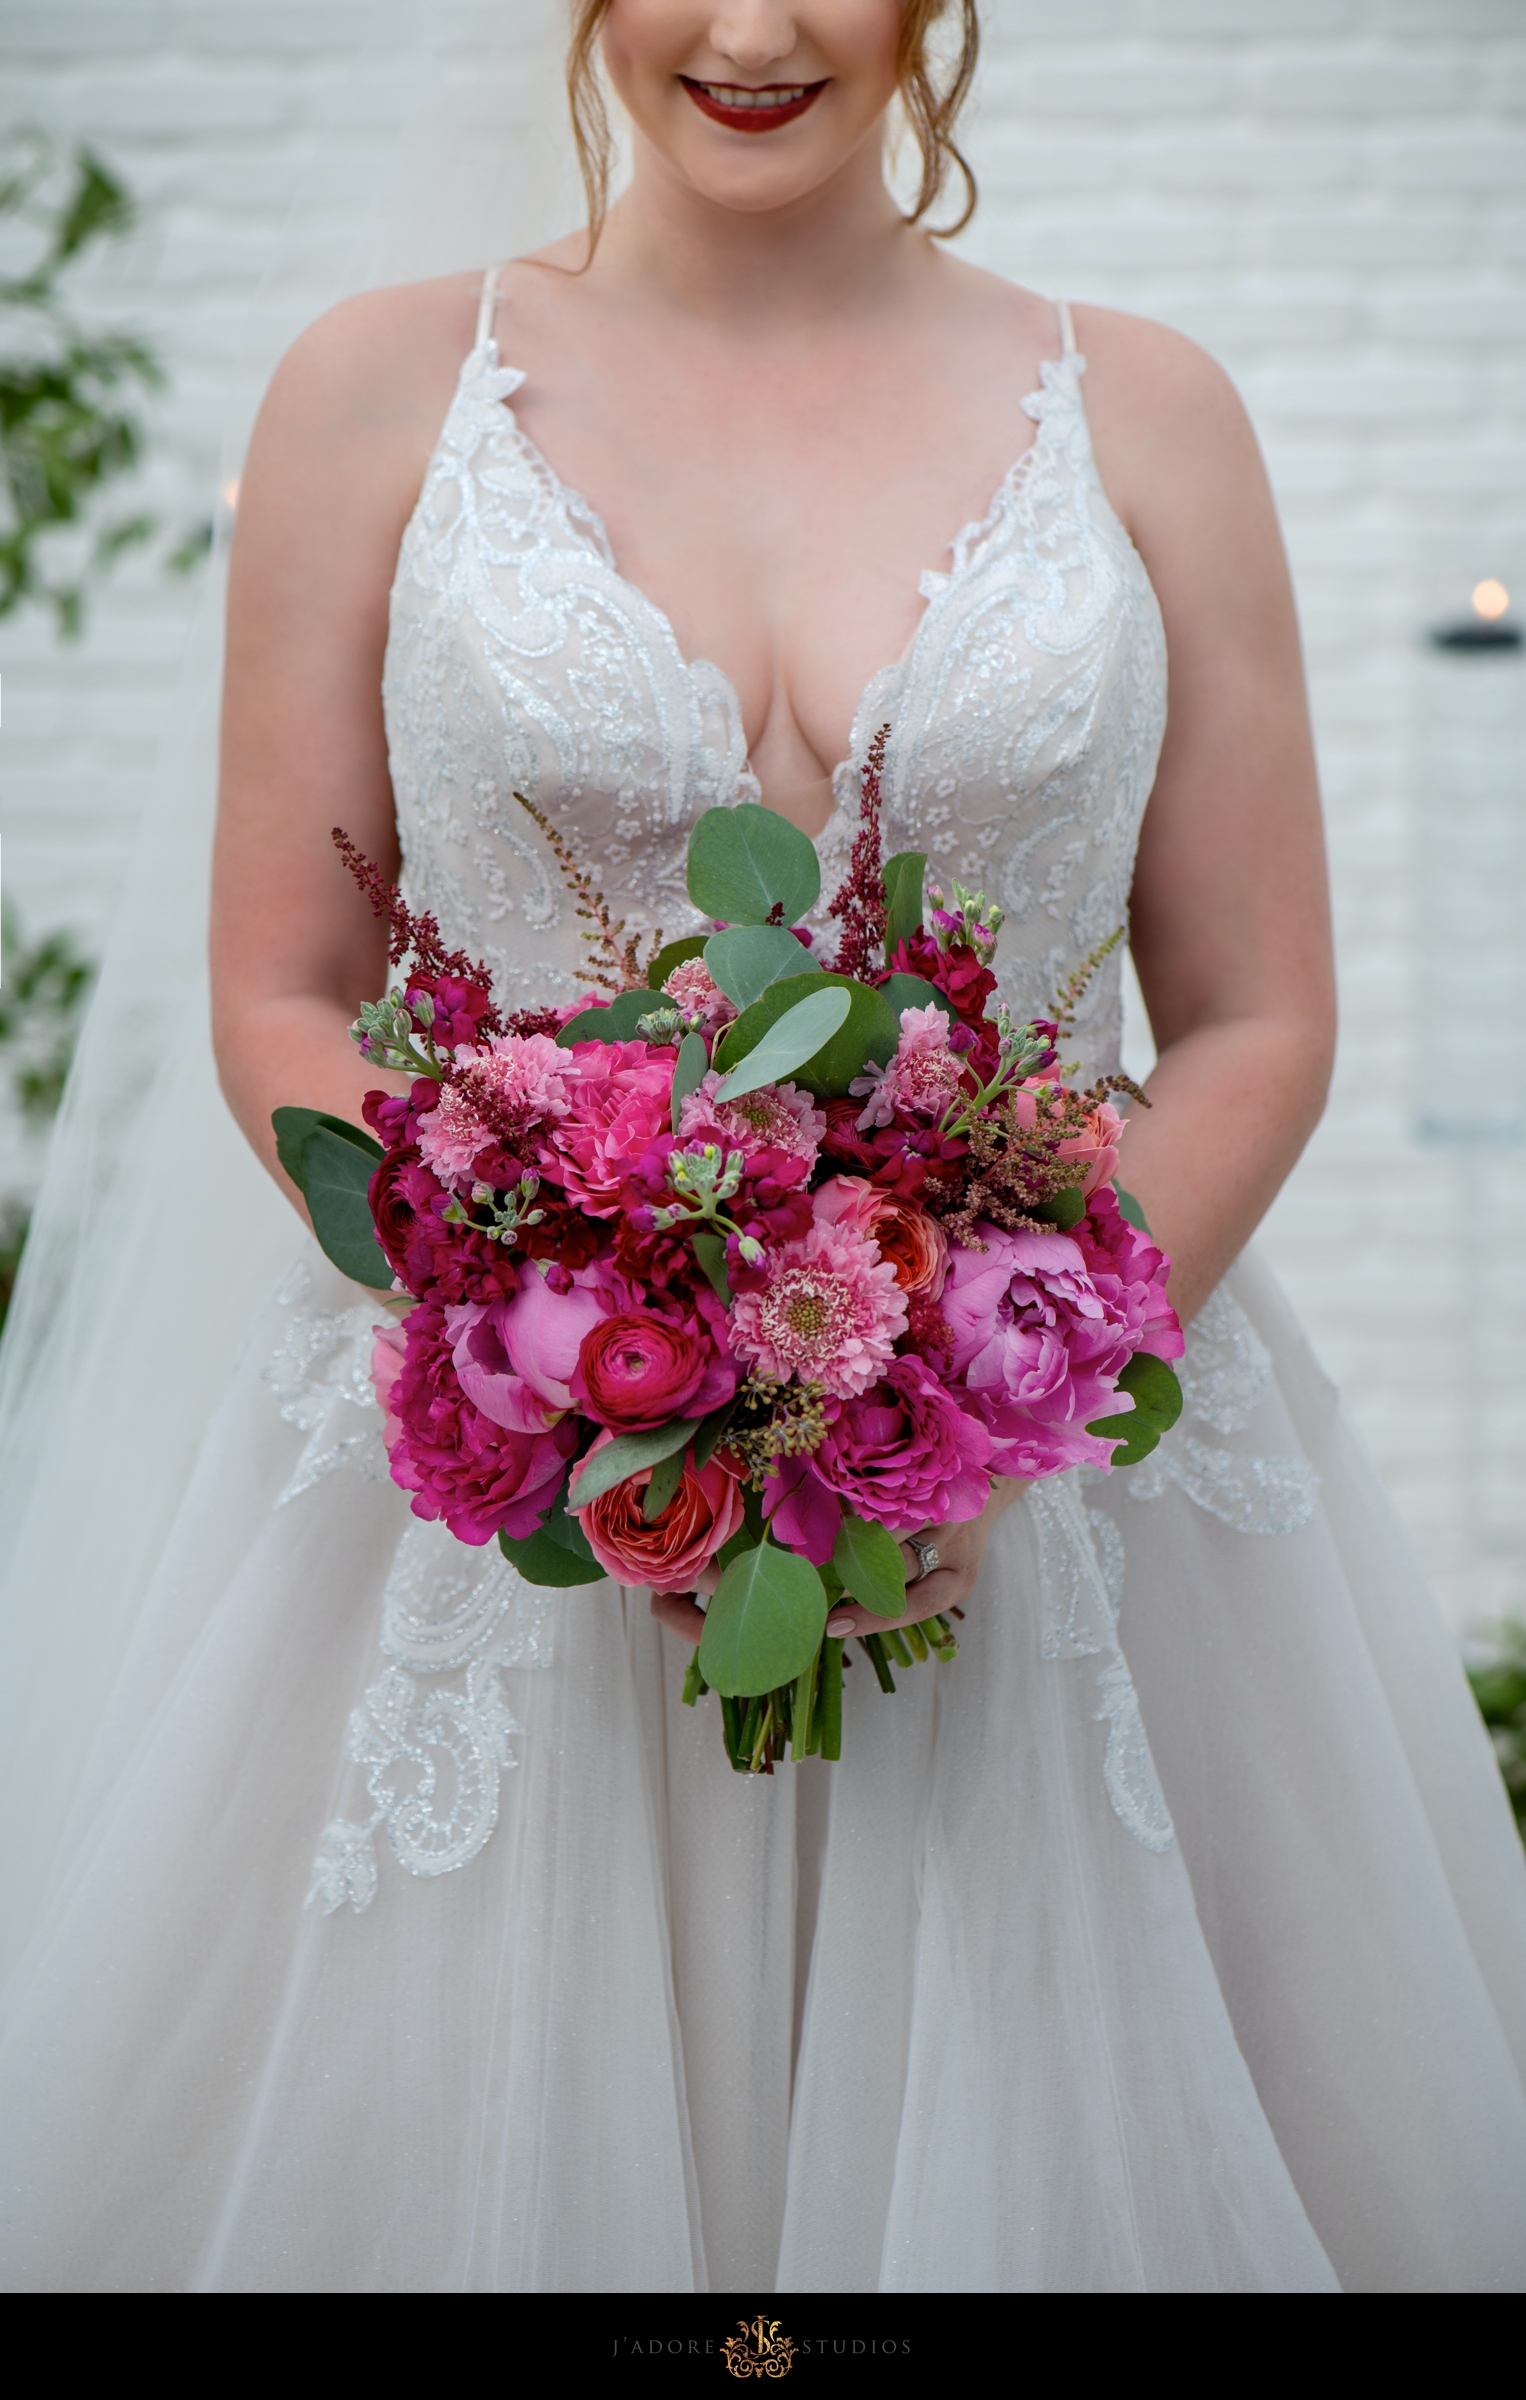 Bride wearing Miss Hayley Paige gown holding pink bouquet